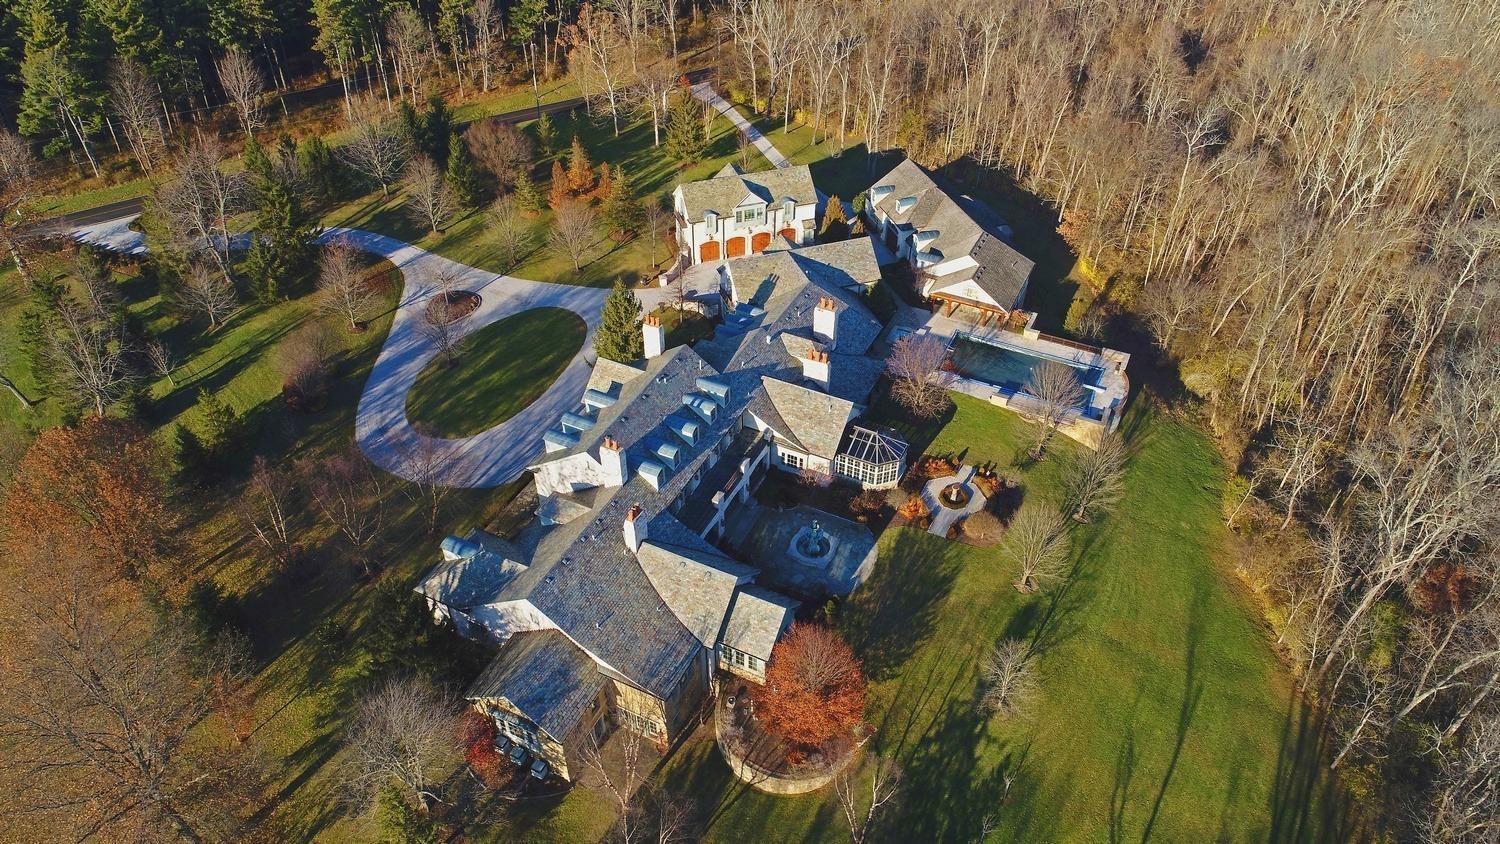 Incomparable 27,000 SF Chateau on 5+ acres surrounded by 300 acre forever greenbelt*Old-world plaster walls*Limestone & walnut floors*Hand-hewn beamed ceilings*Gourmet & catering KIT*5-room master suite*Conservatory*7 fireplaces*1000-bottle wine cellar*Theater*Game rm*Exercise studio*Library*2 carriage house apts*Pool w/pool house*25+ car garages.